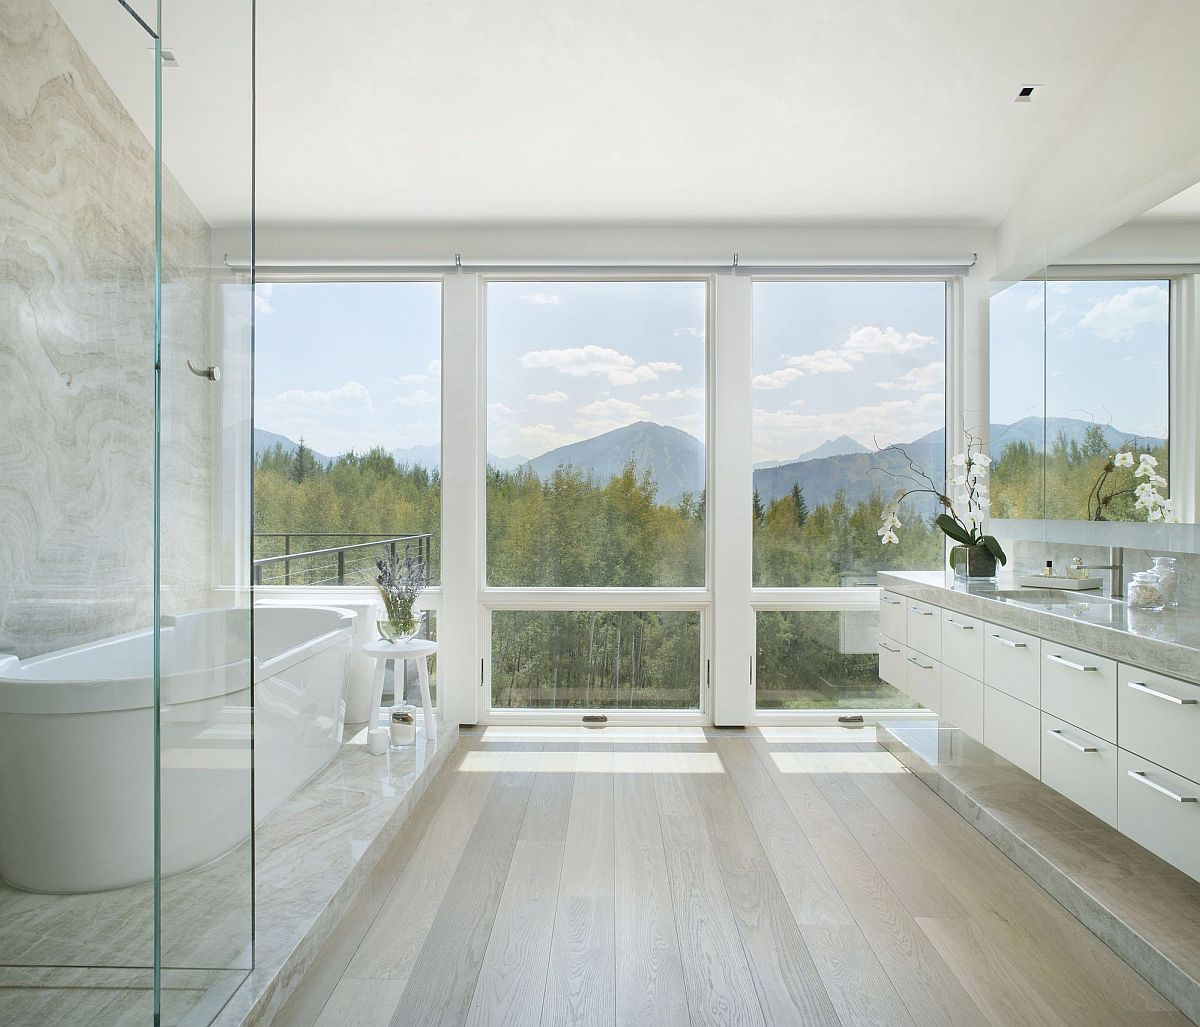 Marble-and-wood-bathroom-in-white-offers-a-lovely-monochromatic-backdrop-60480